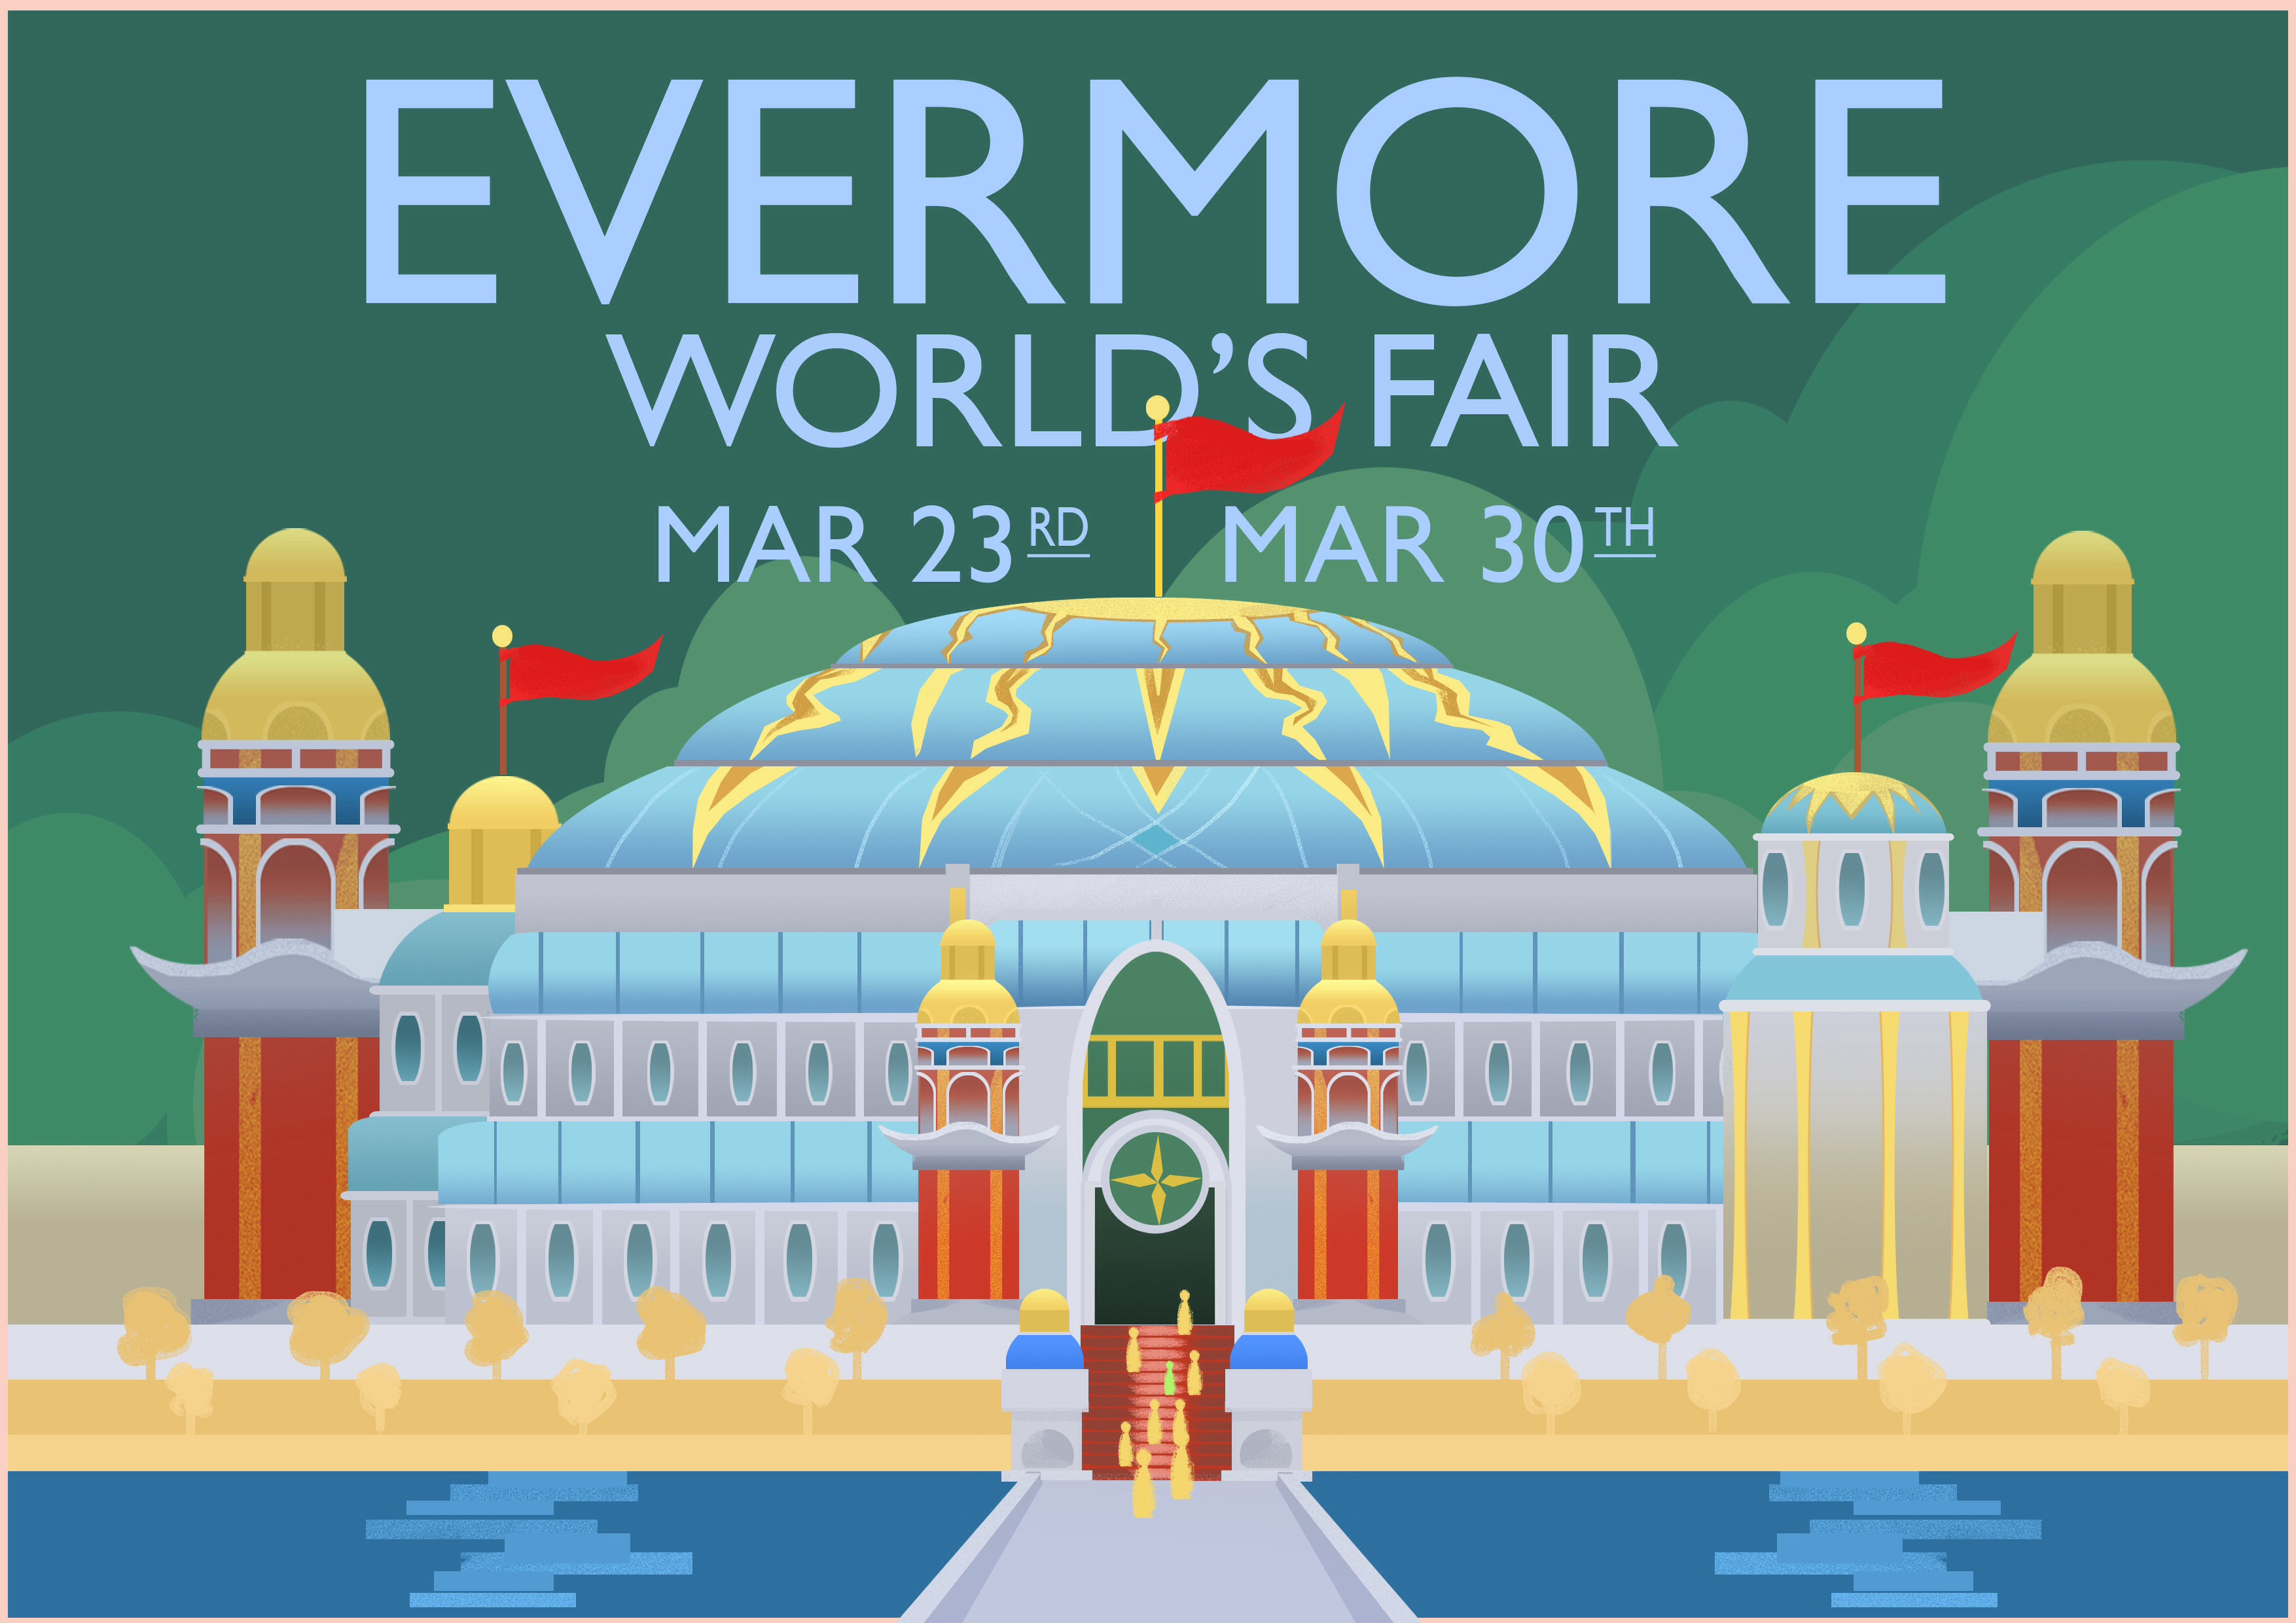 Evermore World's Fair based on Weimar Prusell's 1933 Chicago World Fair: A Century of Progress poster.